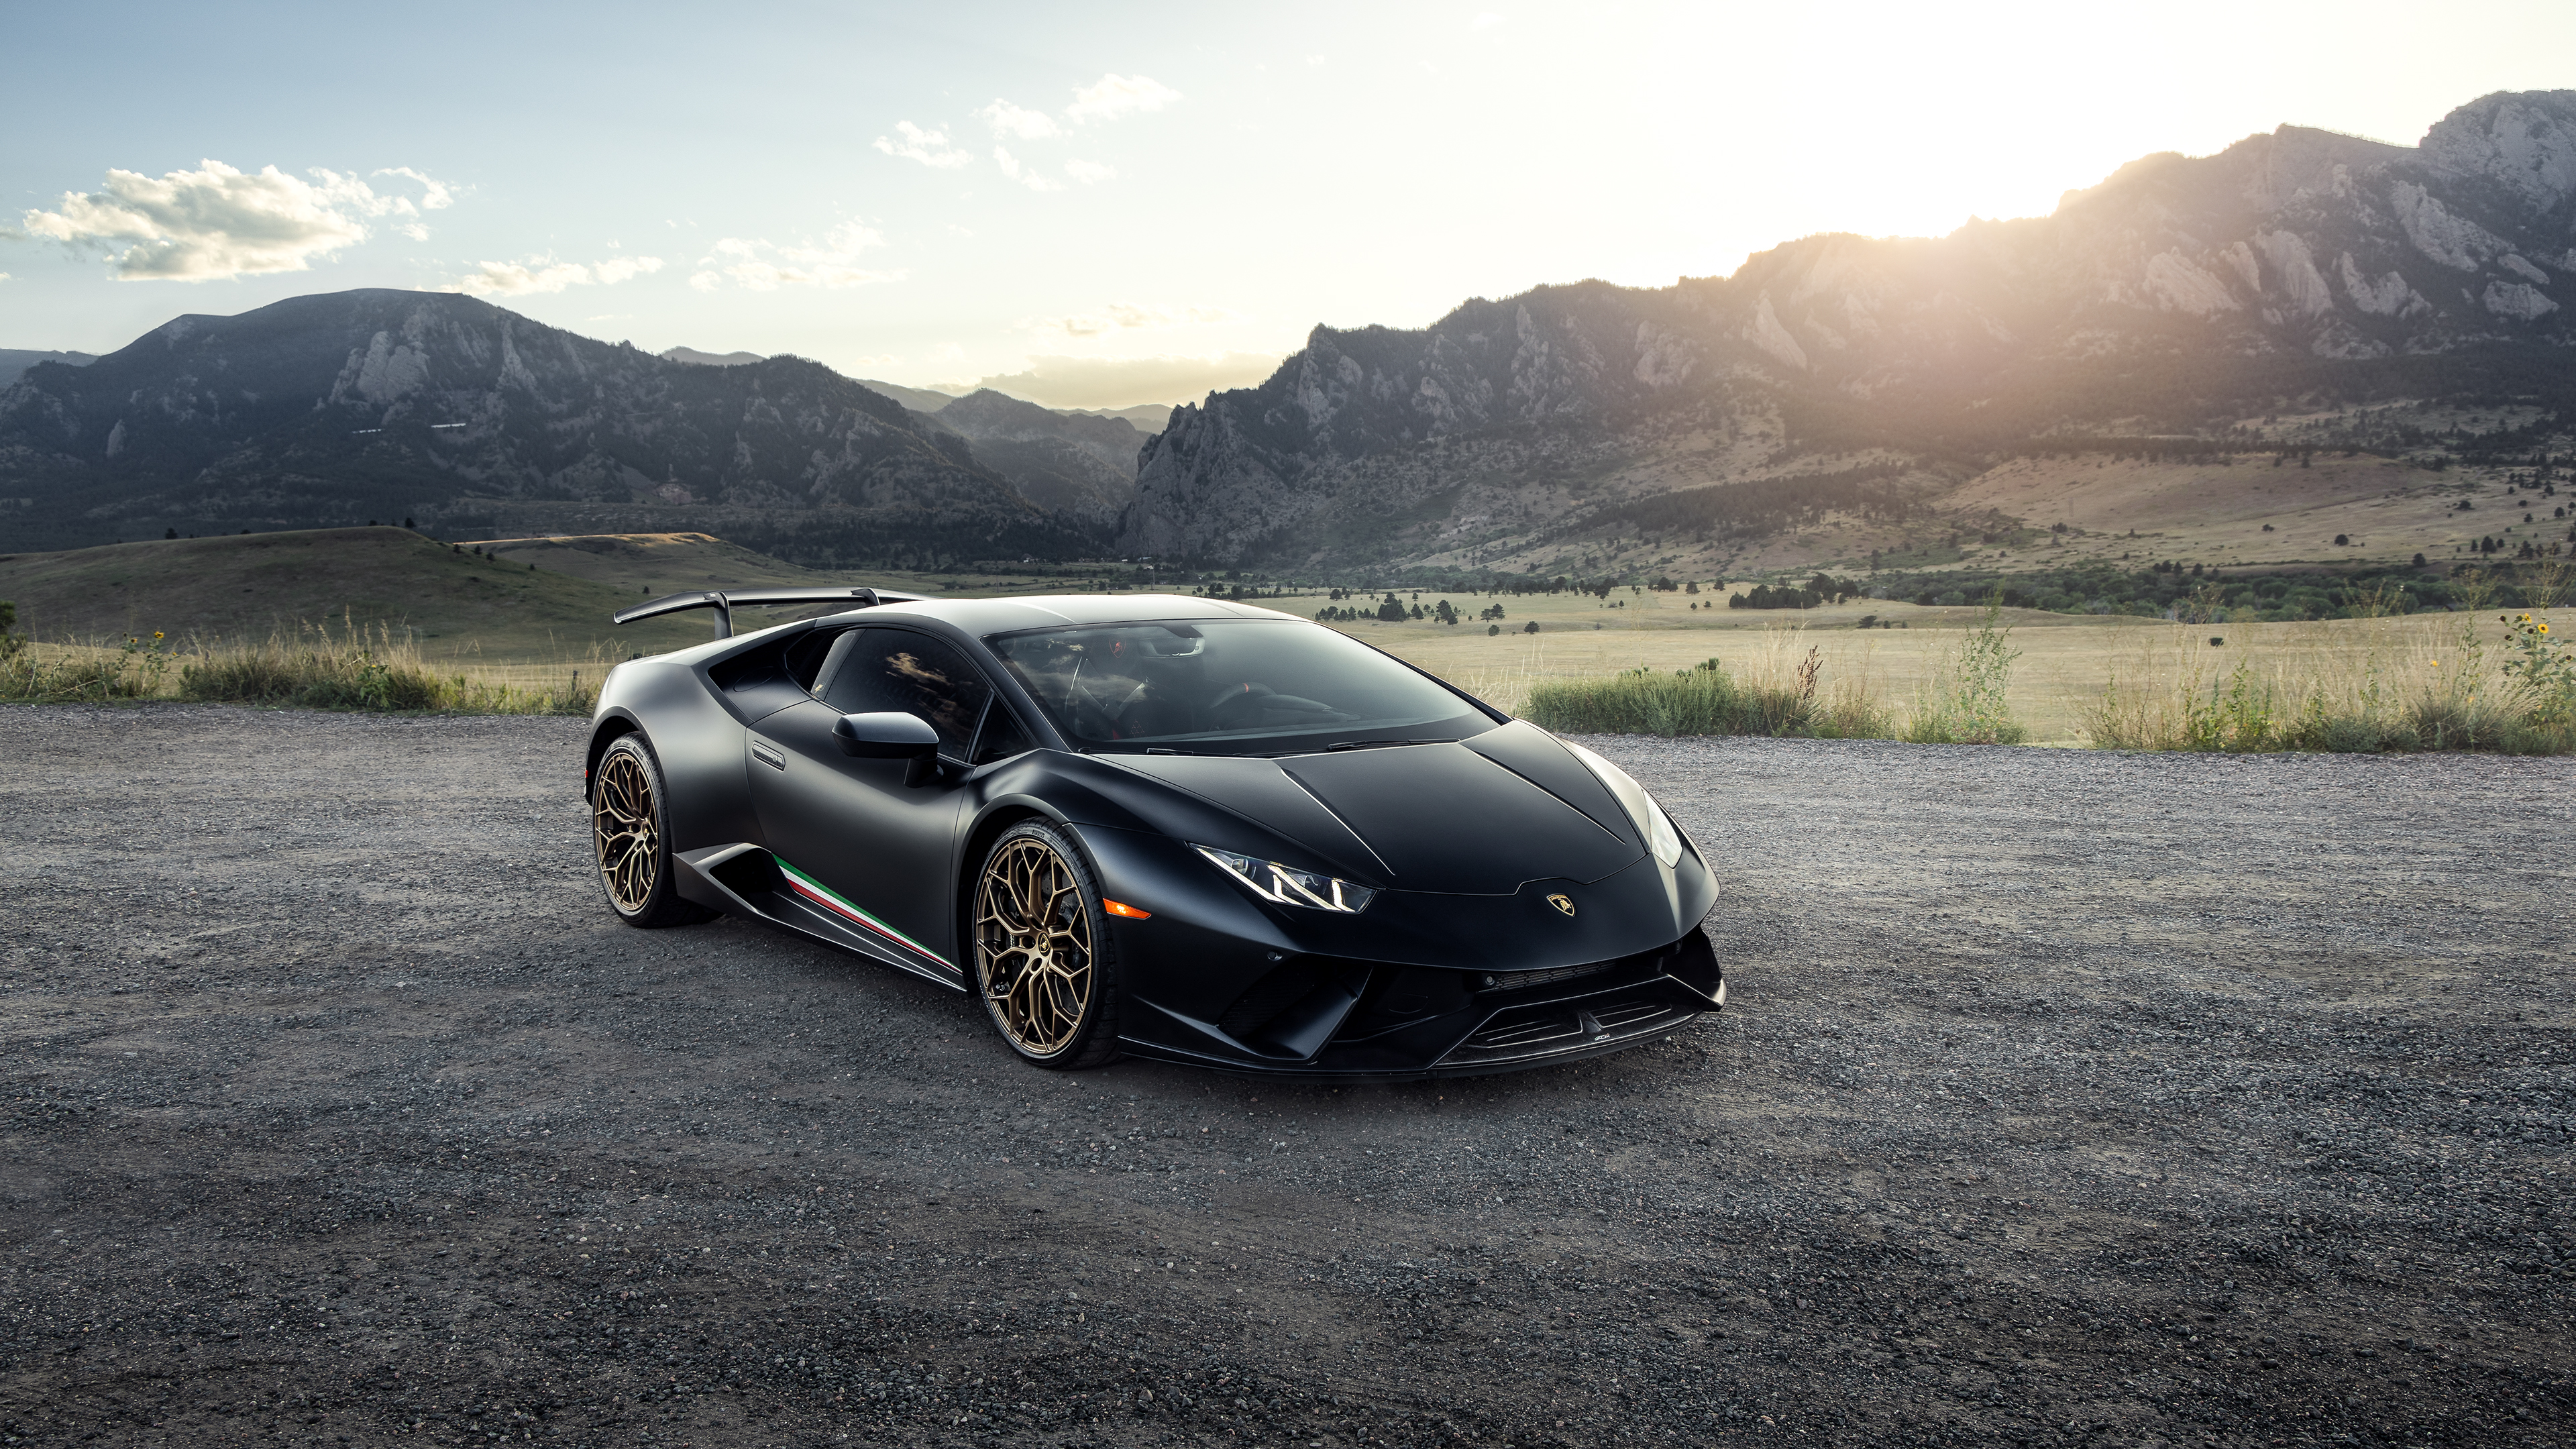 Black Lamborghini Huracan 2020 Hd Cars 4k Wallpapers Images Backgrounds Photos And Pictures